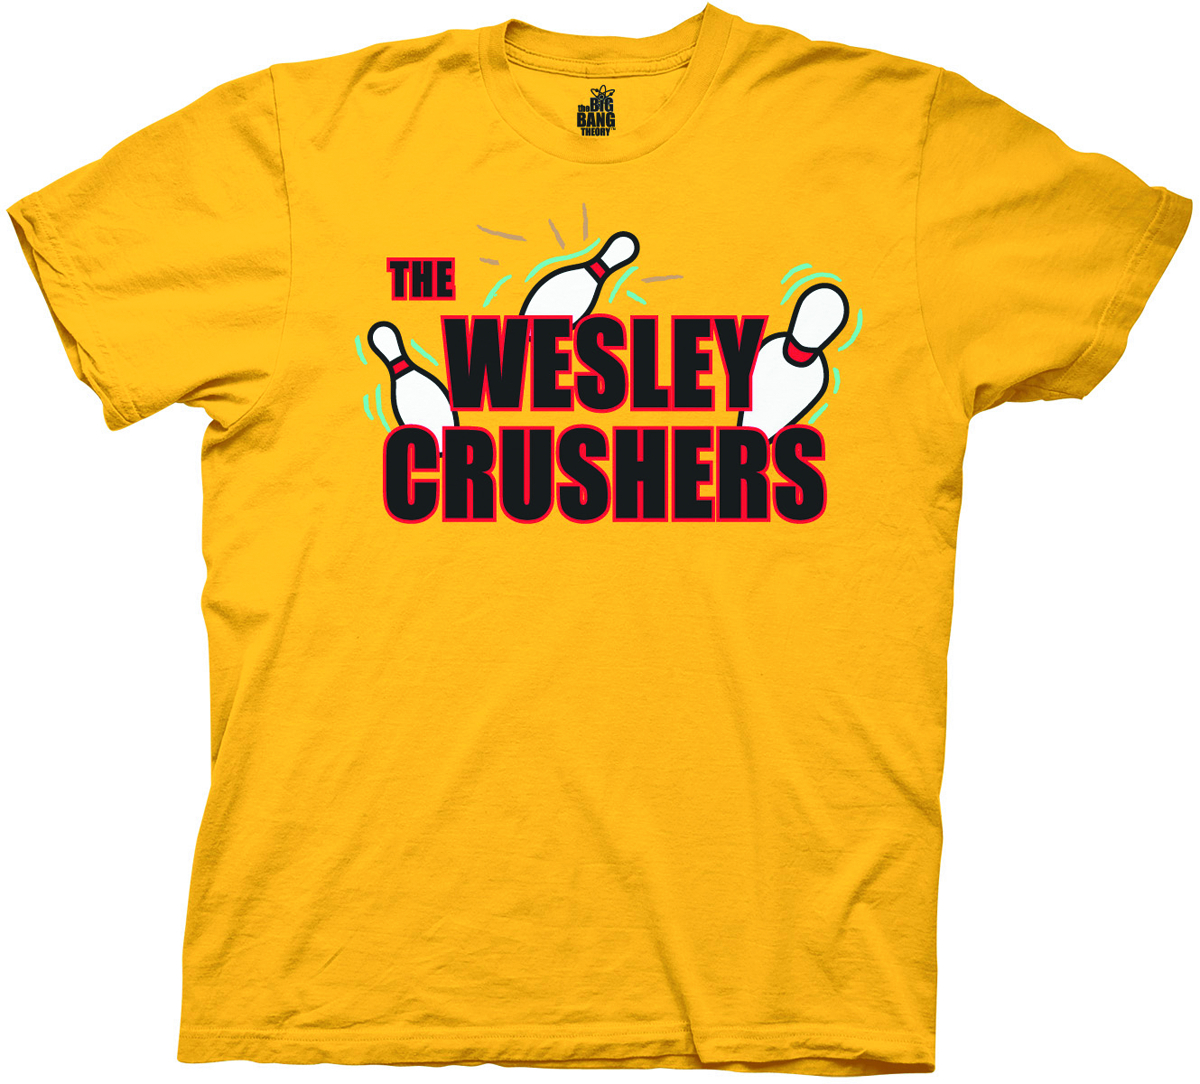 BBT WESLEY CRUSHERS YELLOW T/S LG